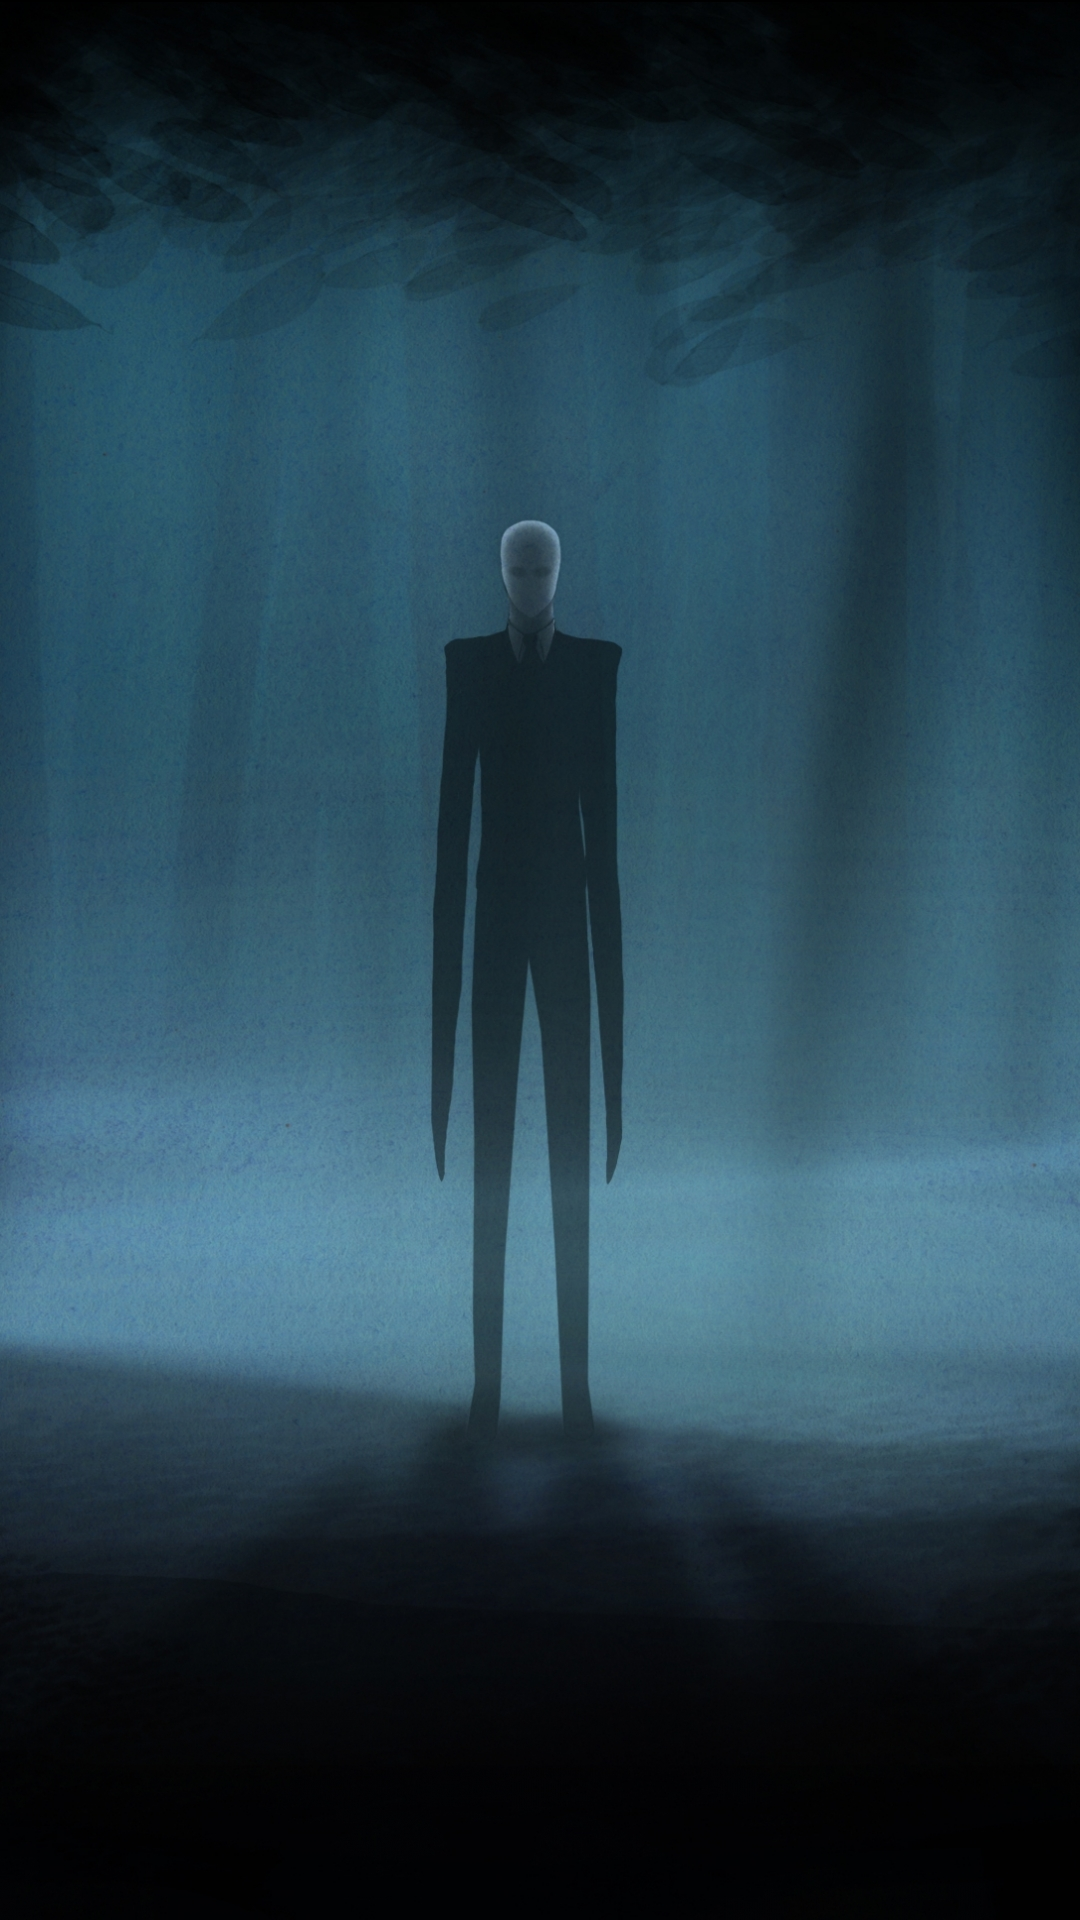 Video Game Slender The Eight Pages 1080x1920 Mobile Wallpaper